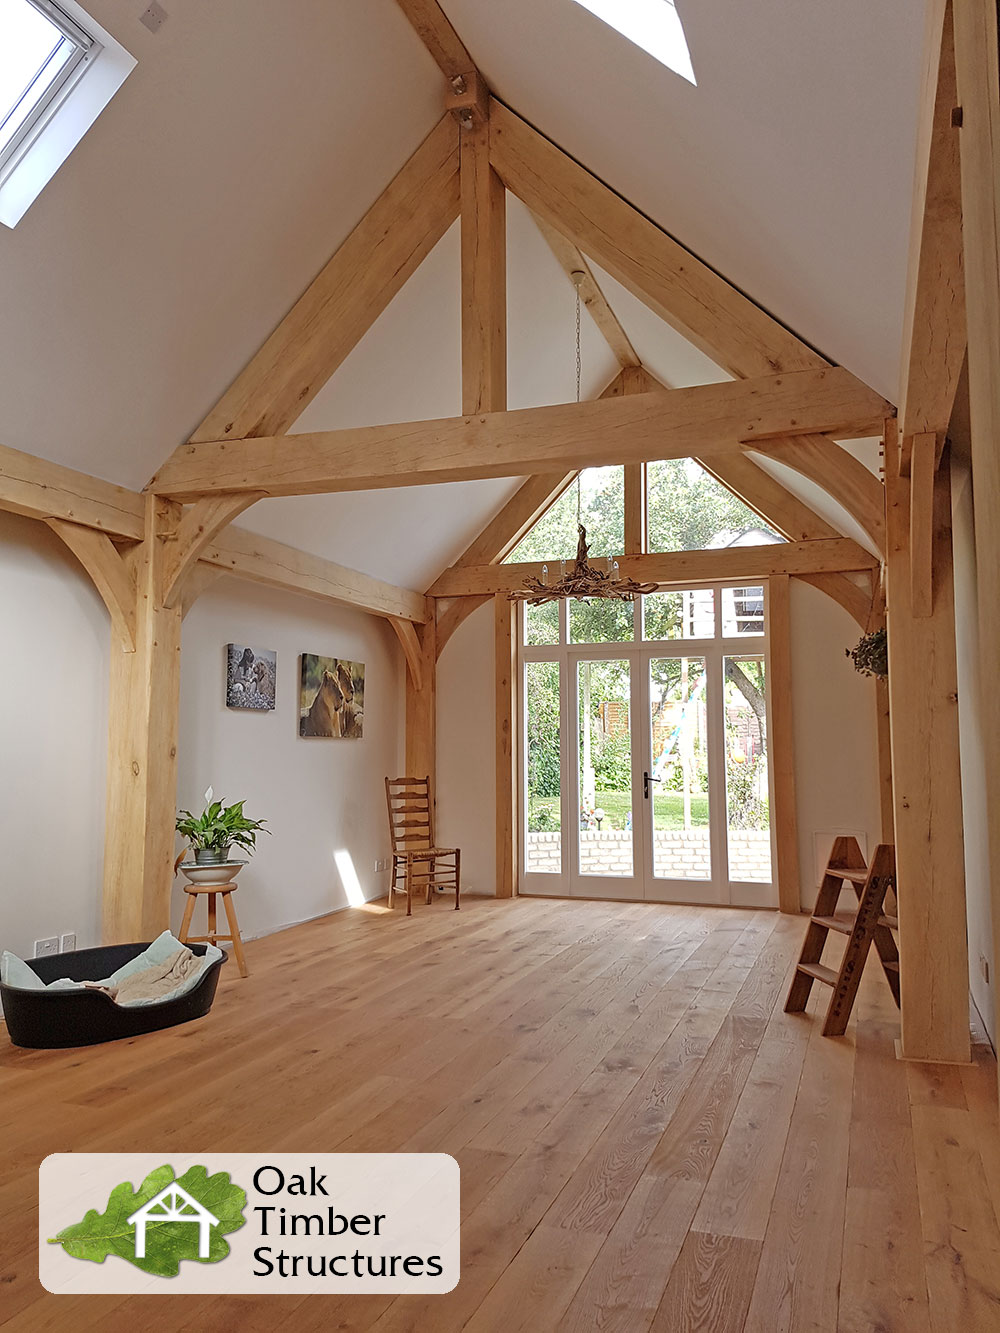 Truss Photo Gallery - Oak Timber Structures